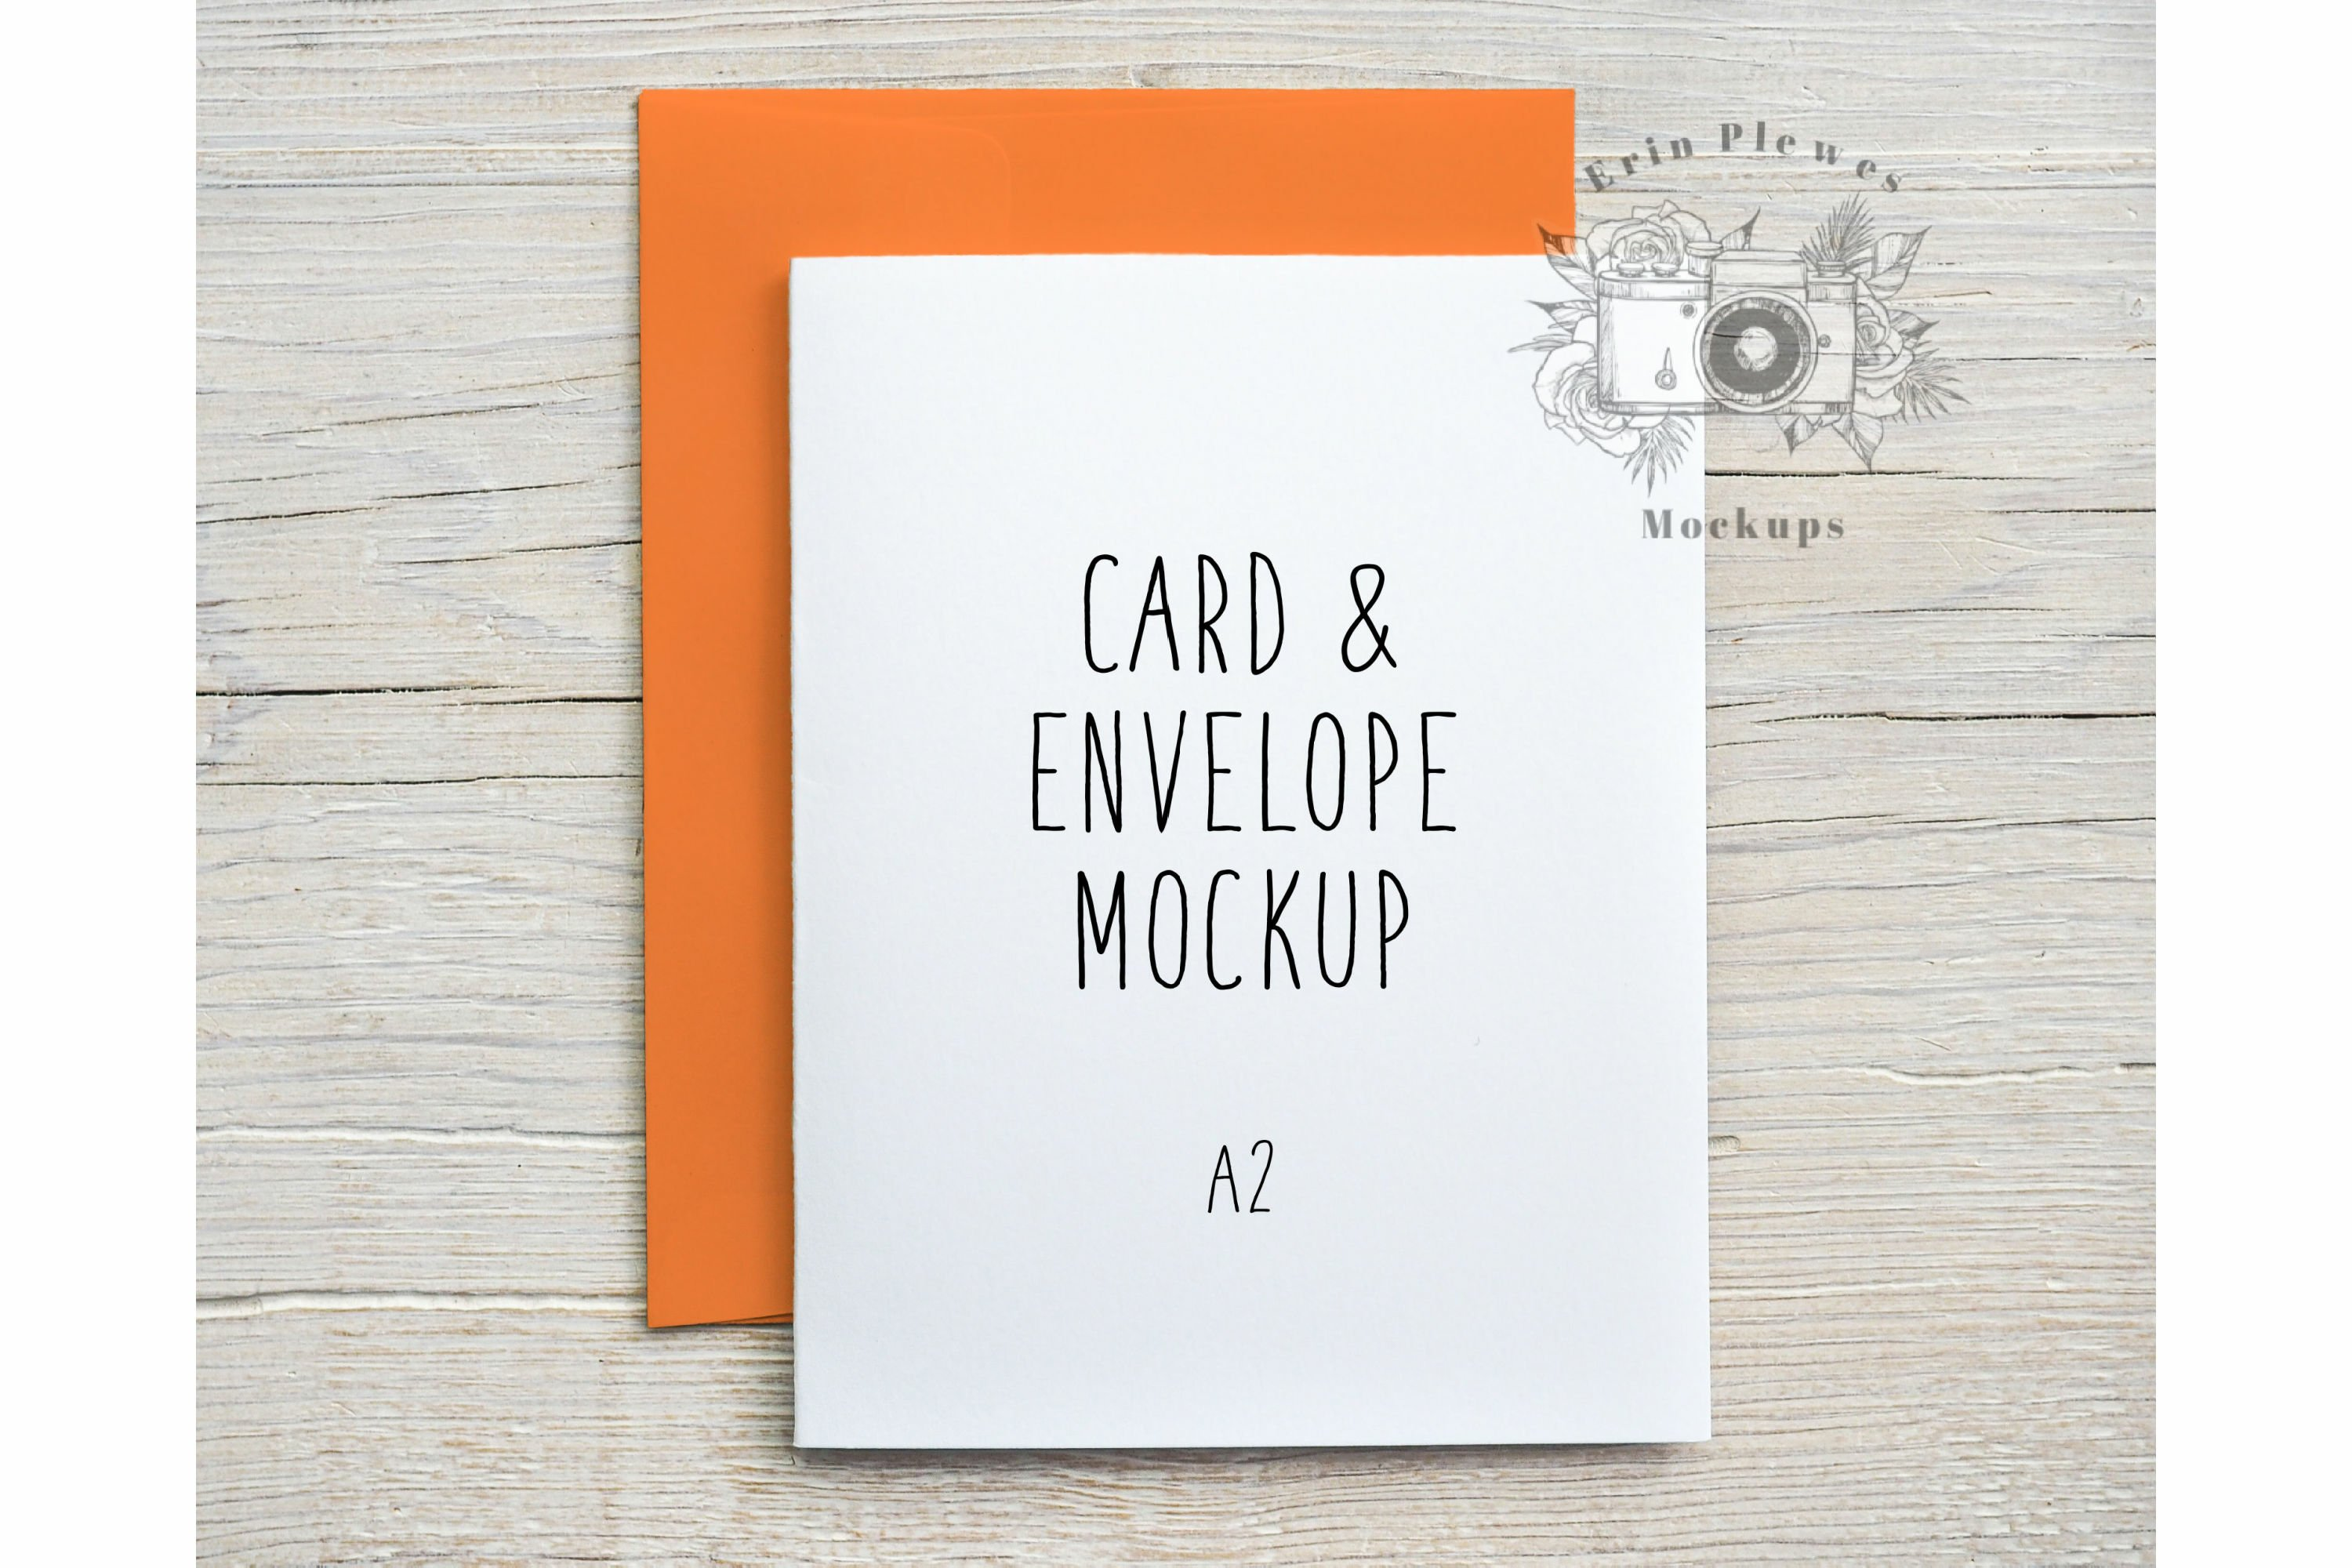 Mockup A21 Card Orange Envelope  Card Flat Lay Template Jpeg Pertaining To A2 Card Template